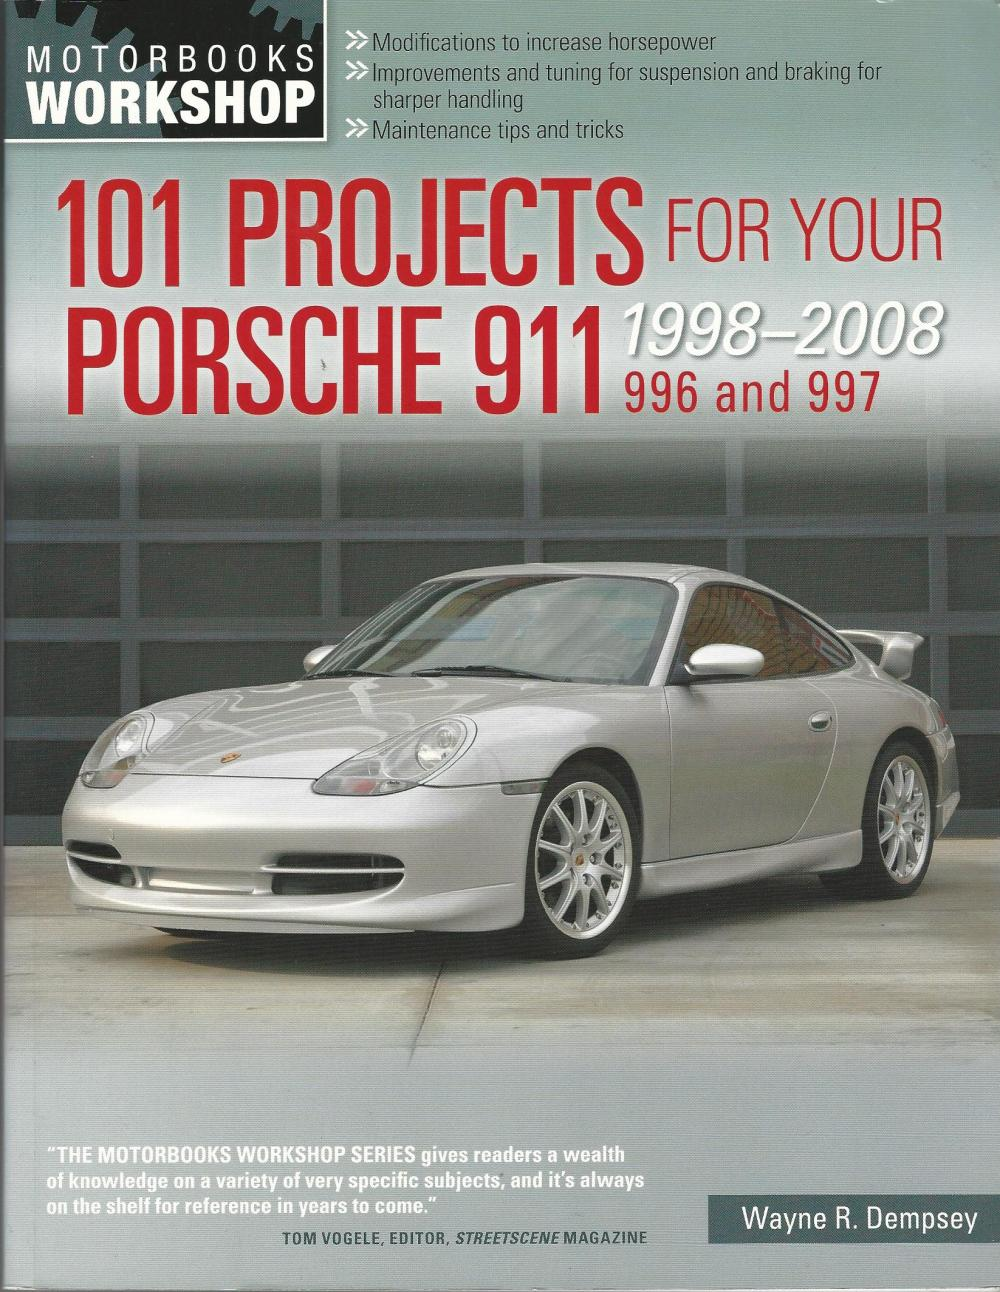 medium resolution of image for 101 projects for your porsche 911 996 and 997 1998 2008